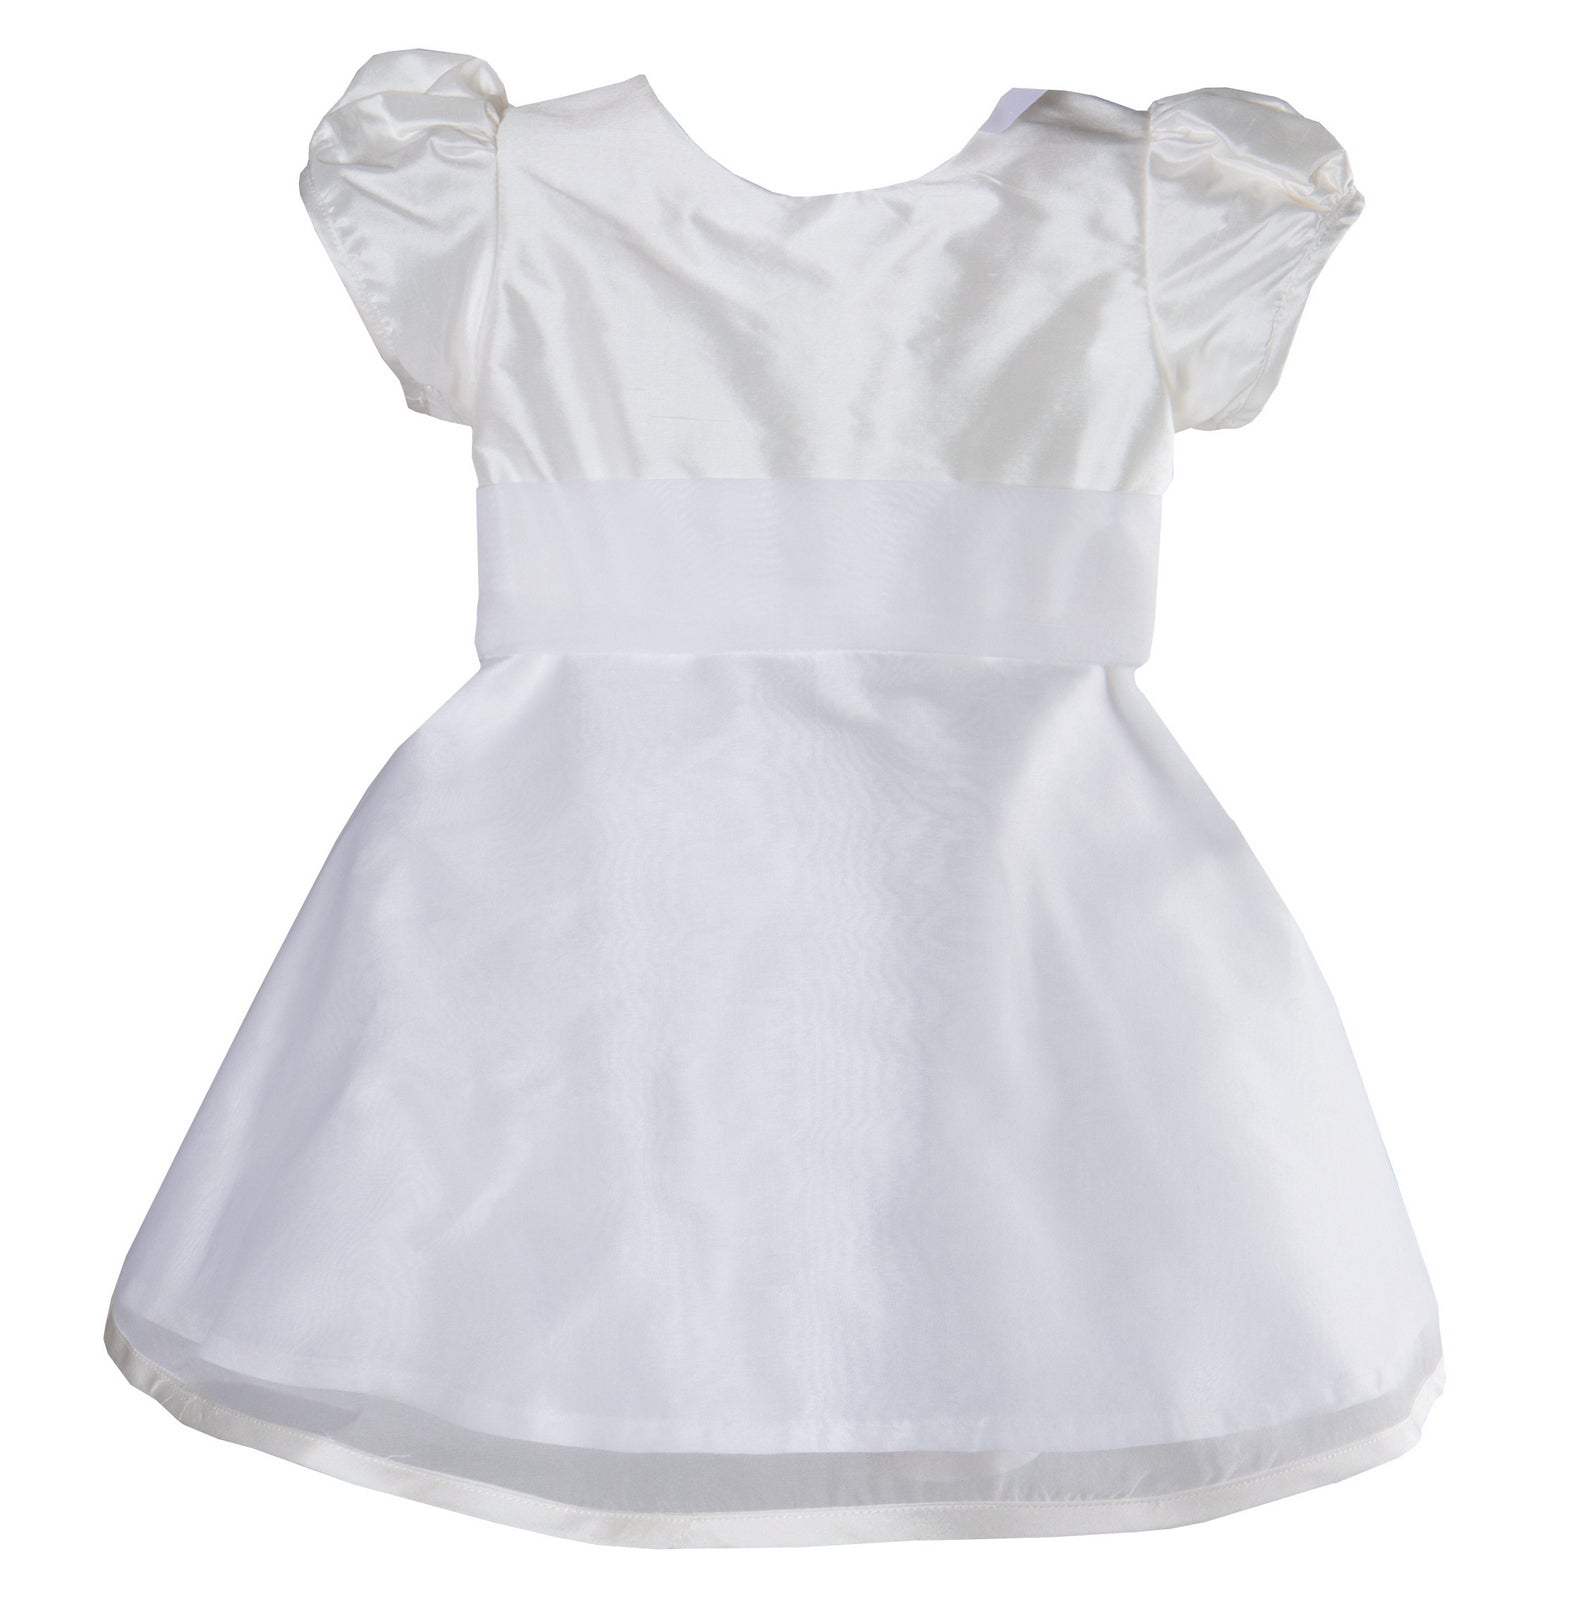 Sue Hill silk matilda toddler flower girl christening dress